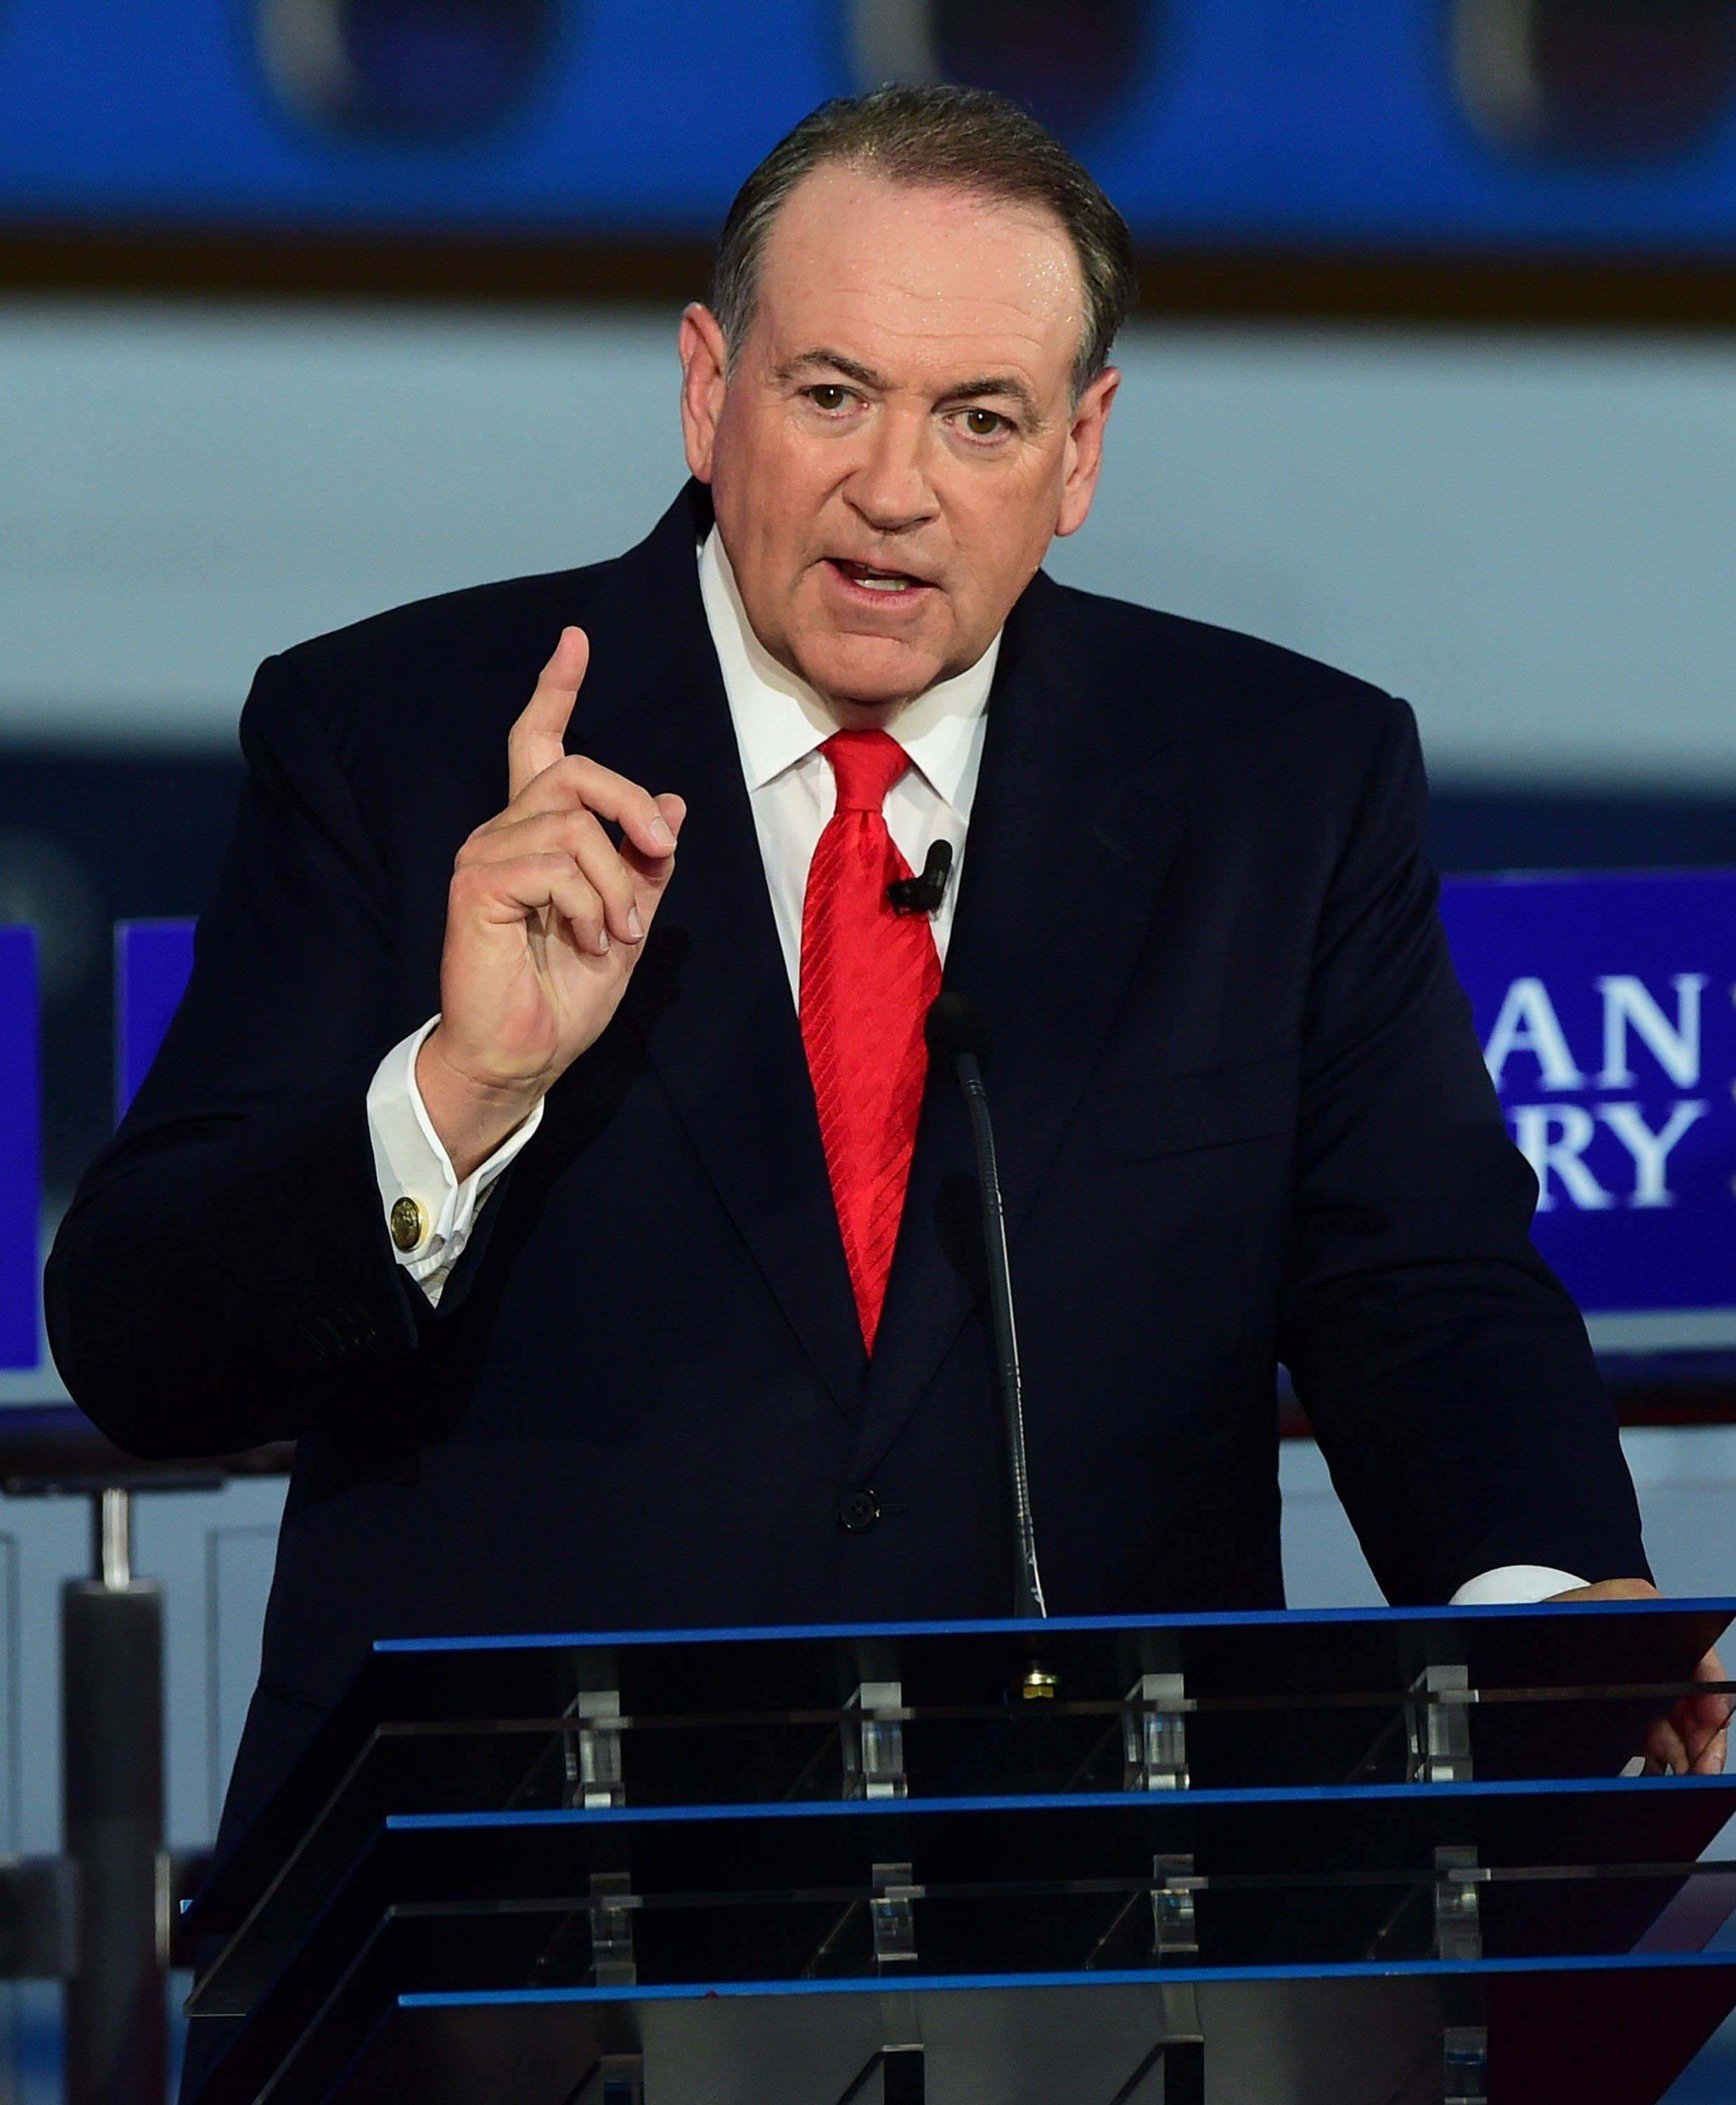 Republican presidential hopeful, former Arkansas Gov. Mike Huckabee gestures  during the Republican presidential debate at the Ronald Reagan Presidential Library in Simi Valley, California on September 16, 2015.  Republican presidential frontrunner Donald Trump stepped into a campaign hornet's nest as his rivals collectively turned their sights on the billionaire in the party's second debate of the 2016 presidential race.  AFP PHOTO / FREDERIC J. BROWN        (Photo credit should read FREDERIC J BROWN/AFP/Getty Images)